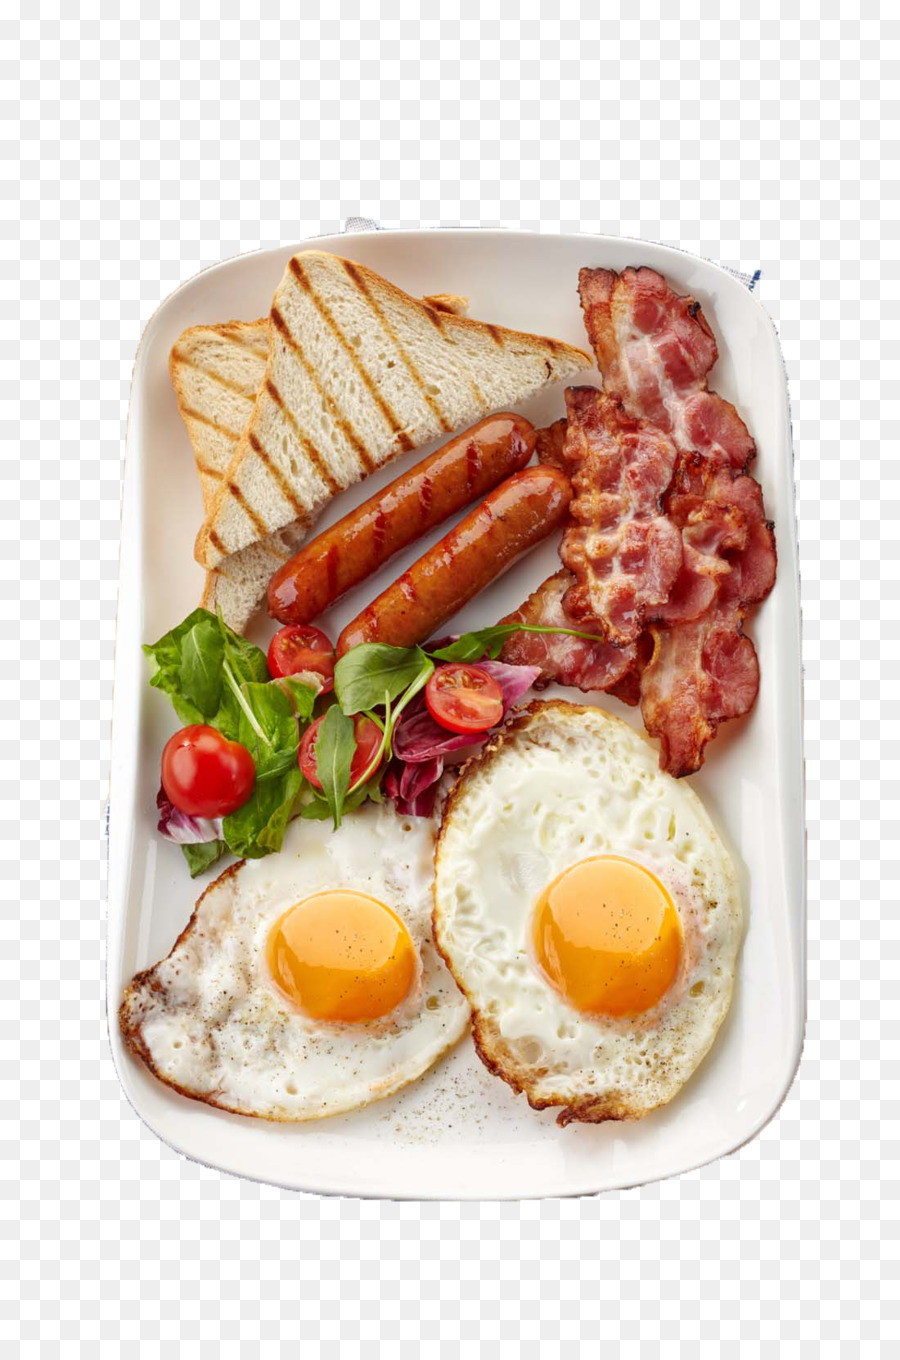 Sausage breakfast fried delicious. Bacon clipart egg toast